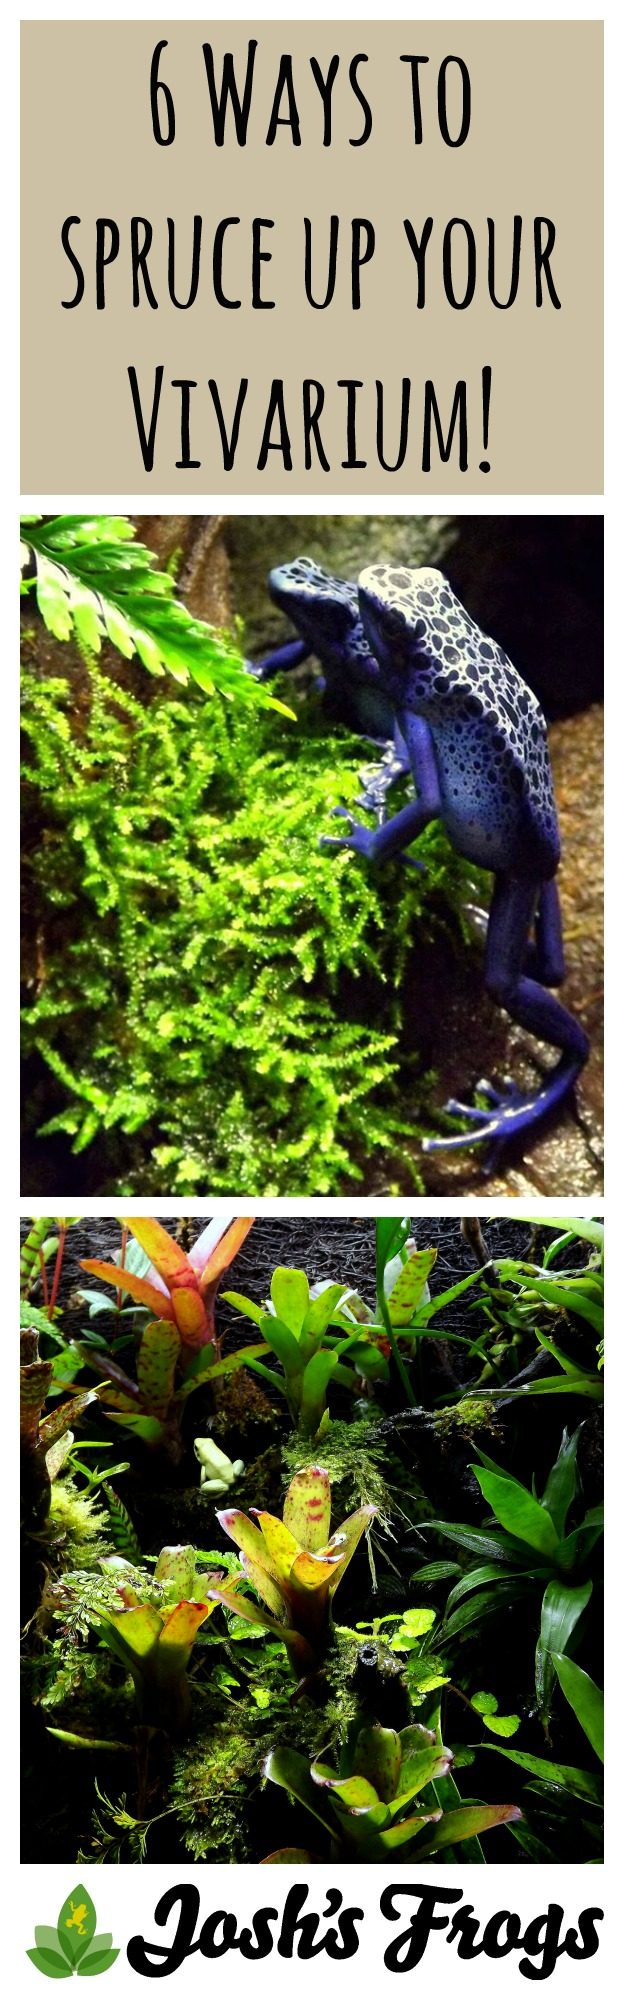 6 Ways To Spruce Up Your Vivarium Josh S Frogs How To Guides